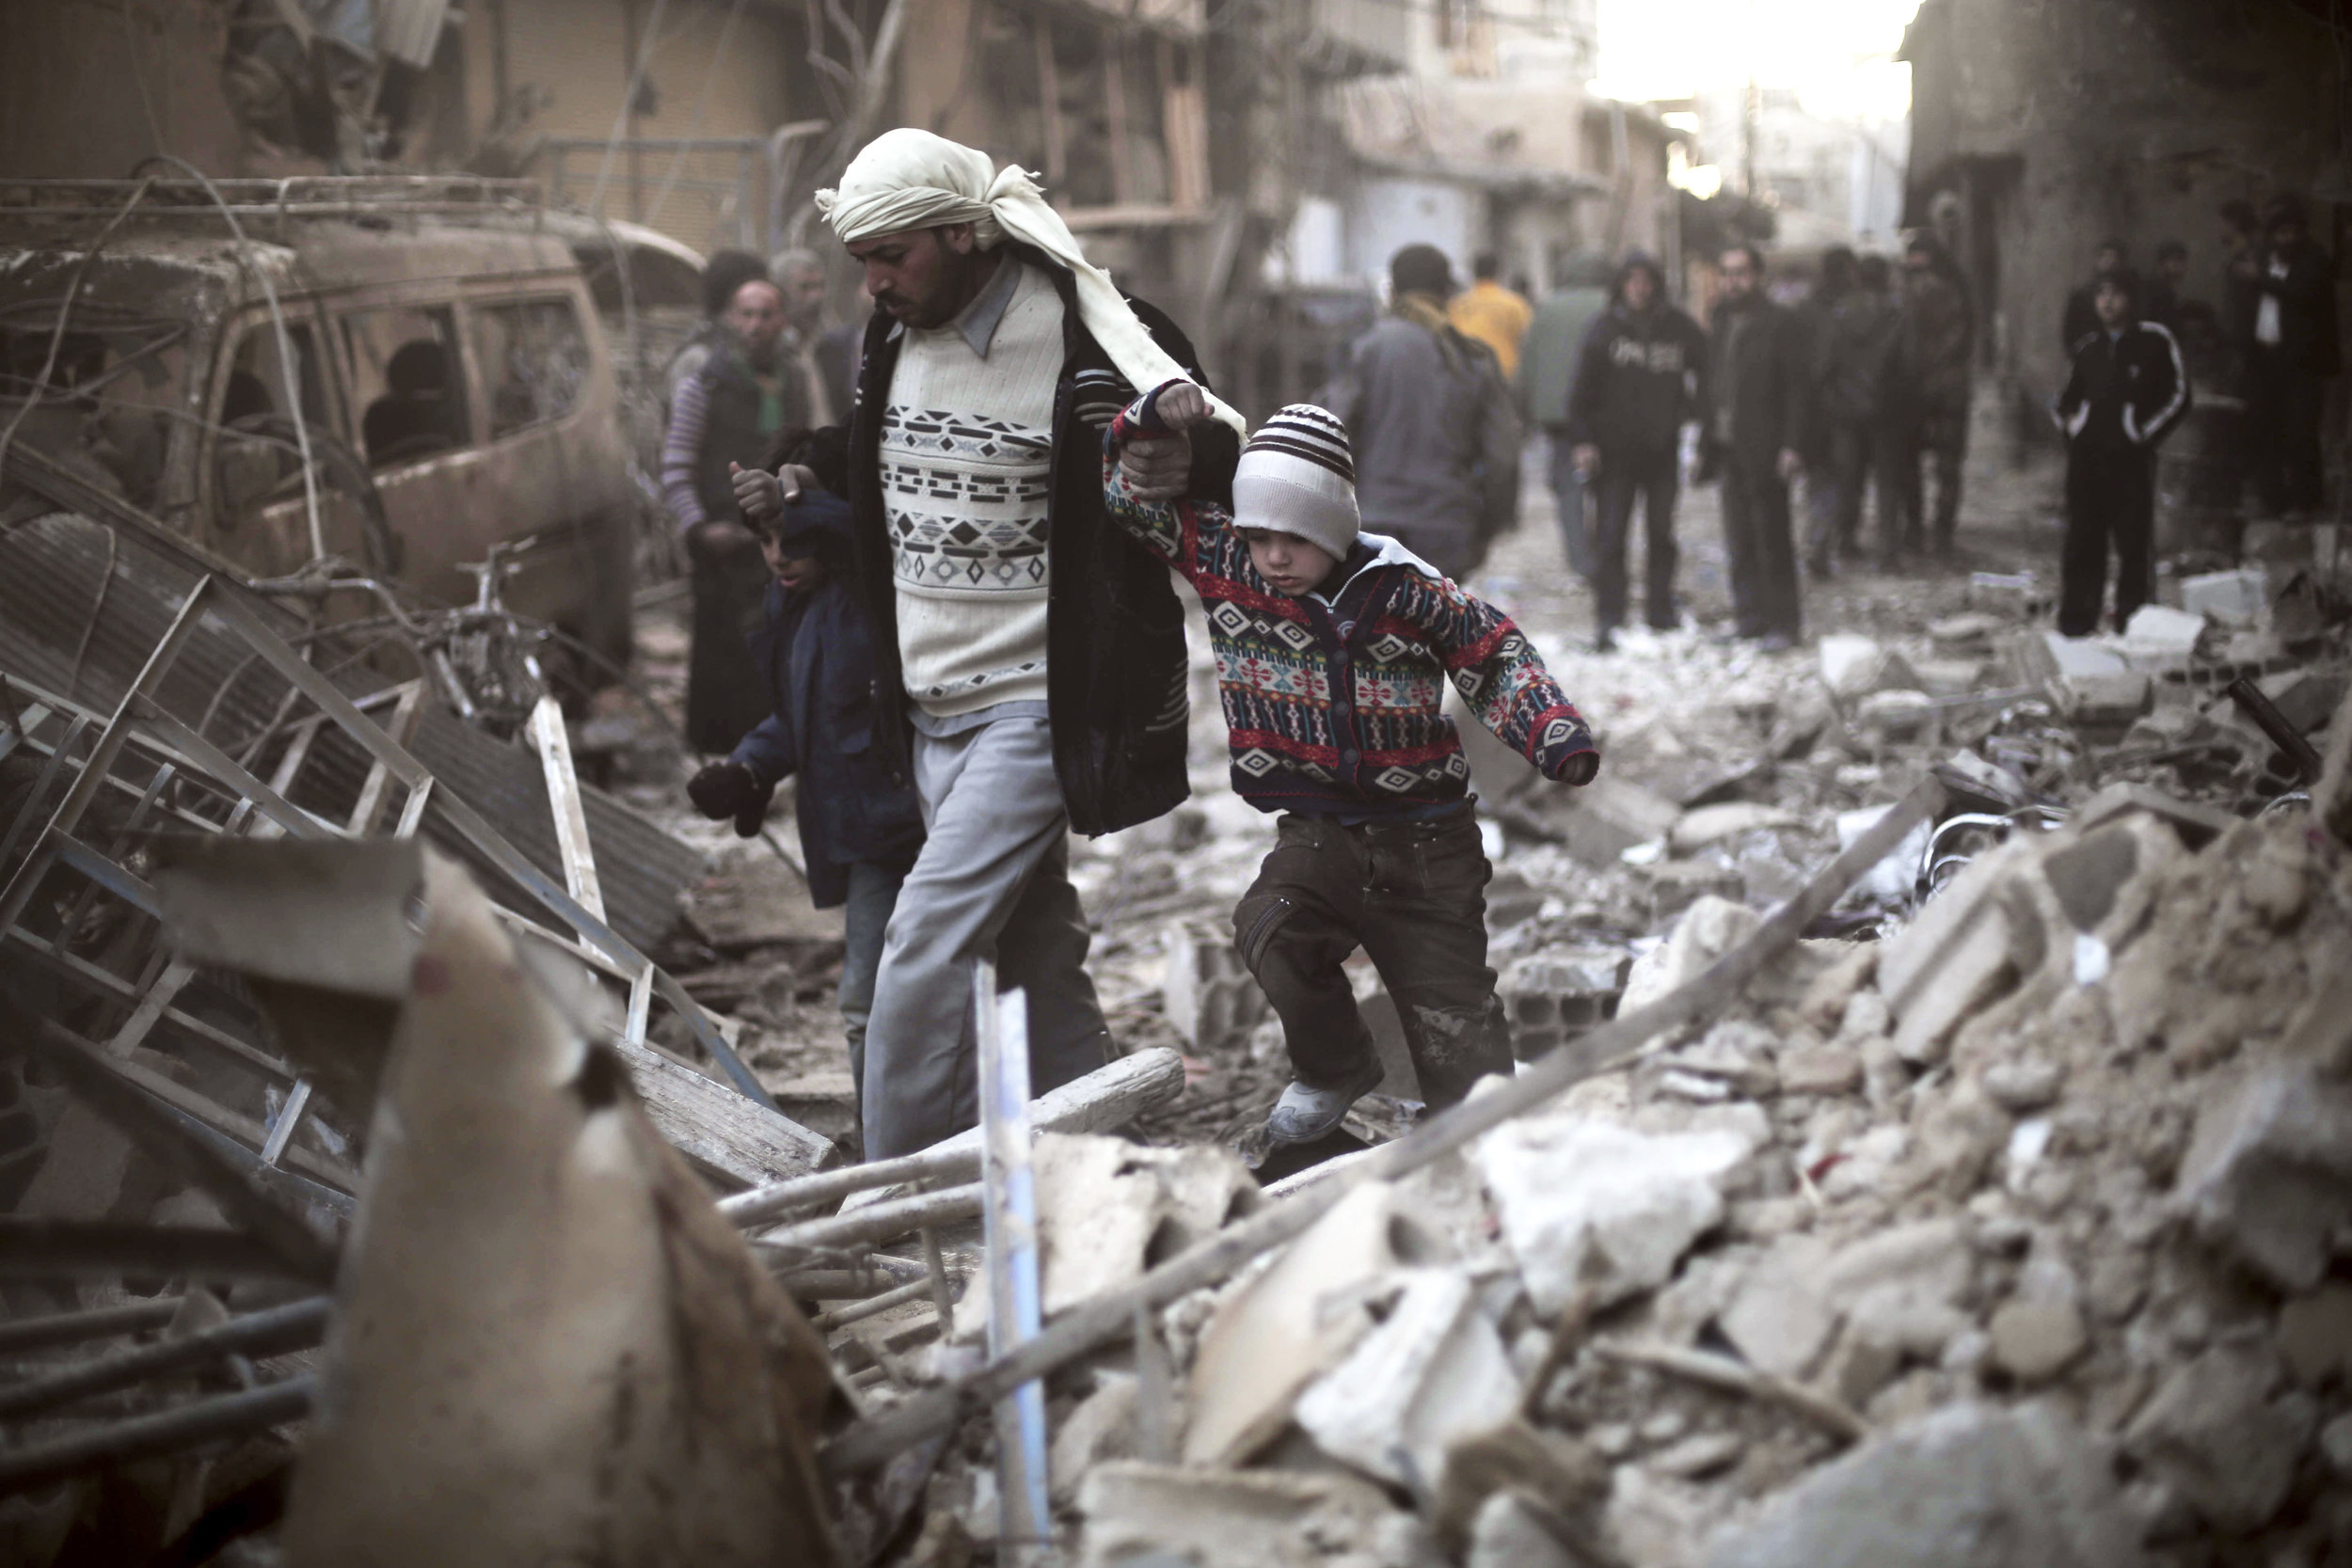 This Dec. 24, 2015 file photo provided by Save the Children, a man walks with a pair of children in hand hand through the rubble in Eastern Ghouta, Syria. (Save the Children via AP, File)